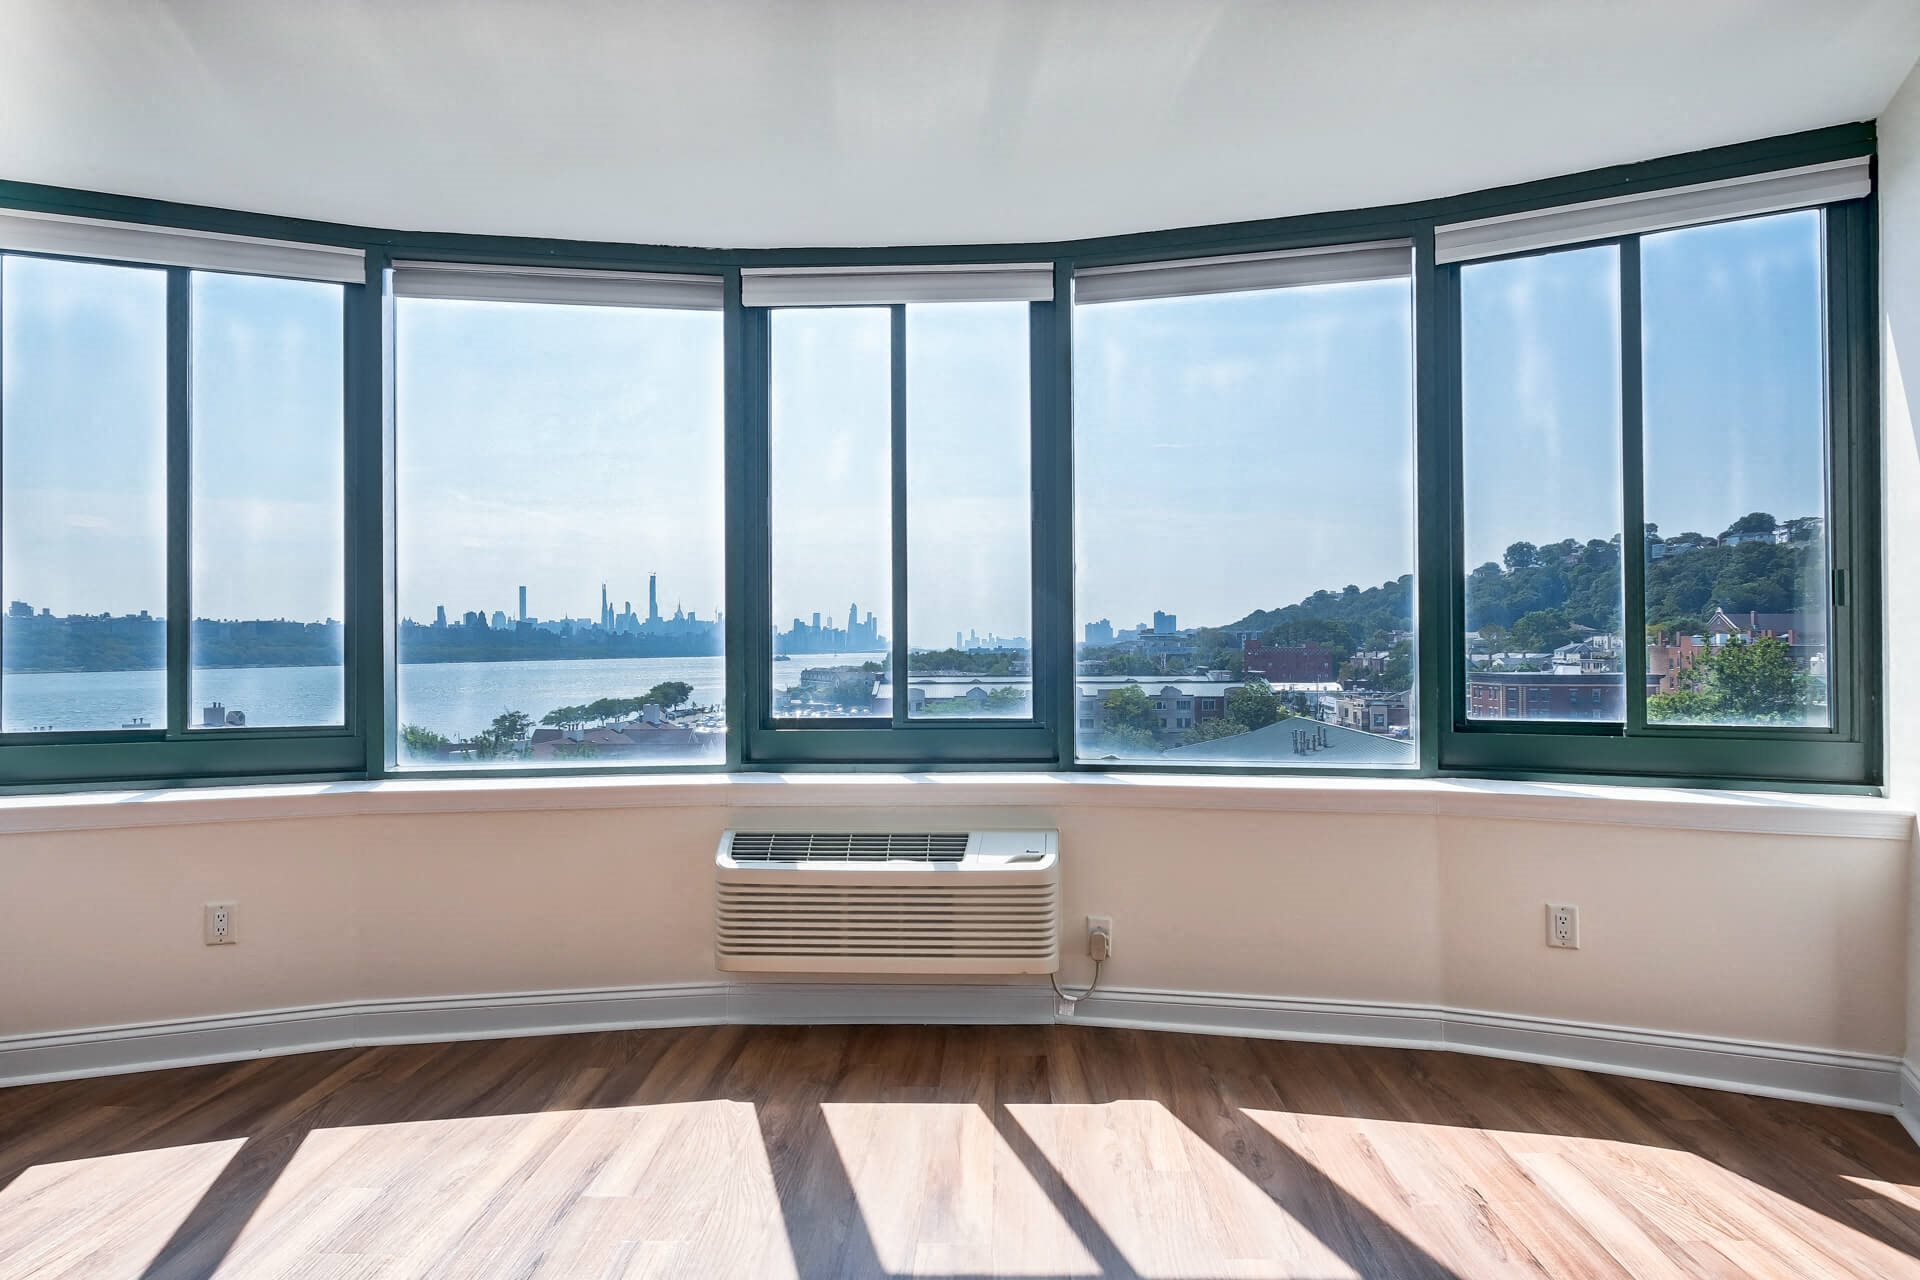 Panorama window with a stunning view at Windsor at Mariners, New Jersey, 07020